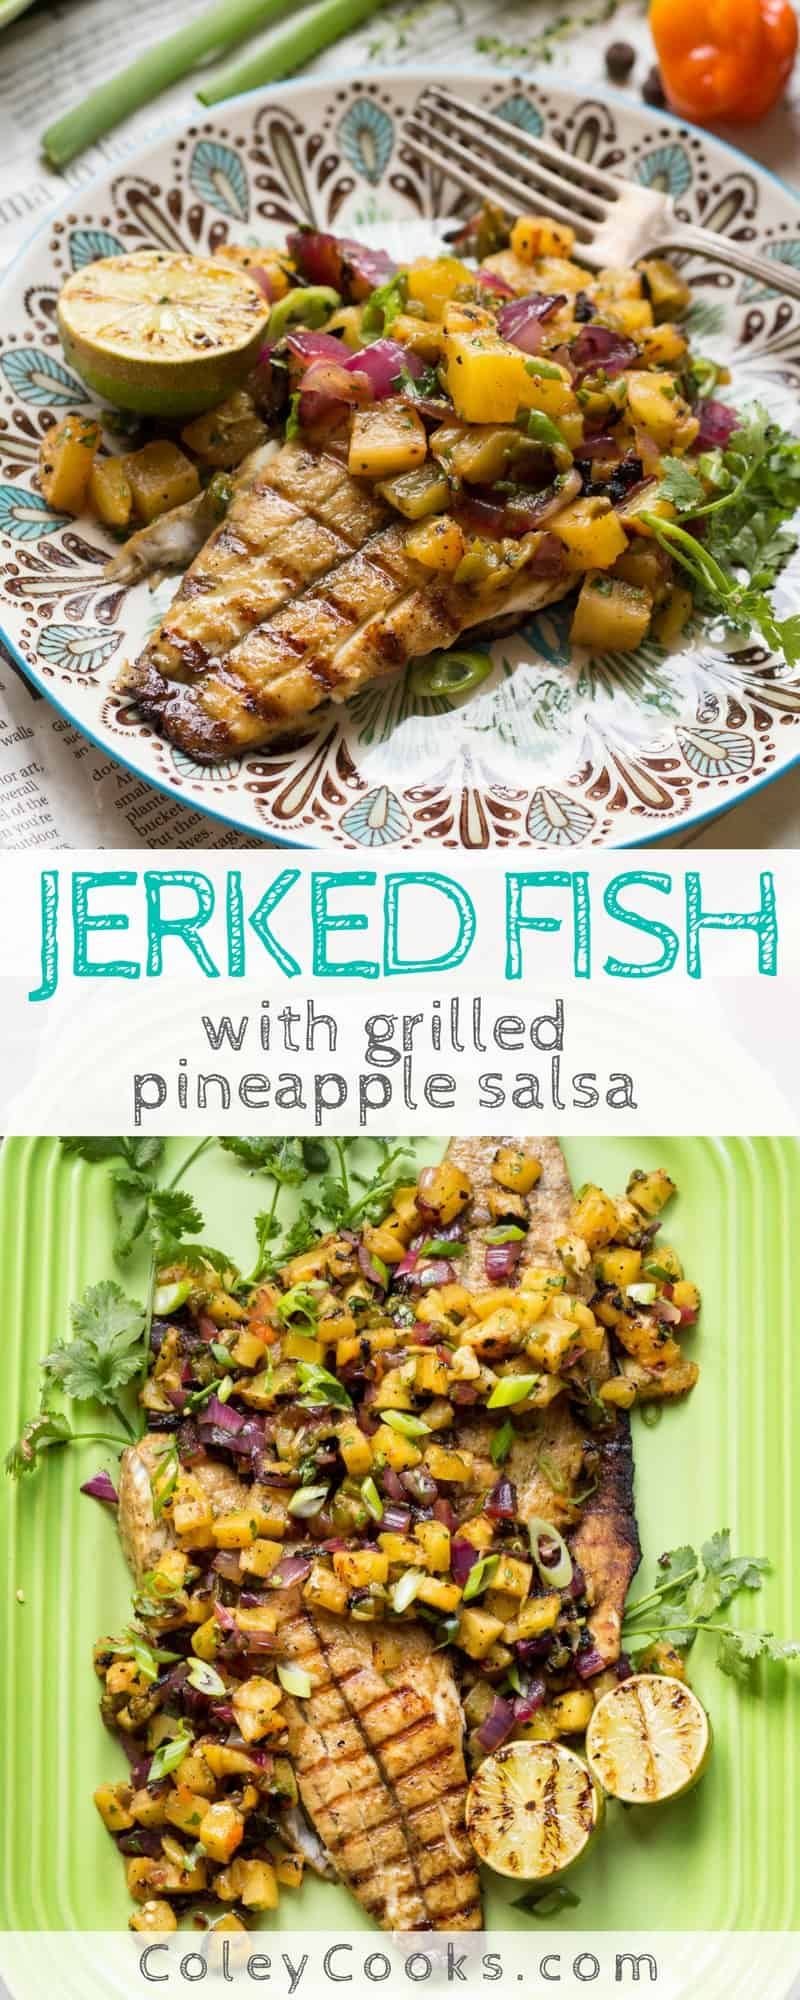 JERKED FISH with GRILLED PINEAPPLE SALSA | A light and flavorful summertime dinner! The Jamaican jerk marinade is spicy and smoky, and the grilled pineapple salsa gives it lots of sweet, tangy flavor. | ColeyCooks.com